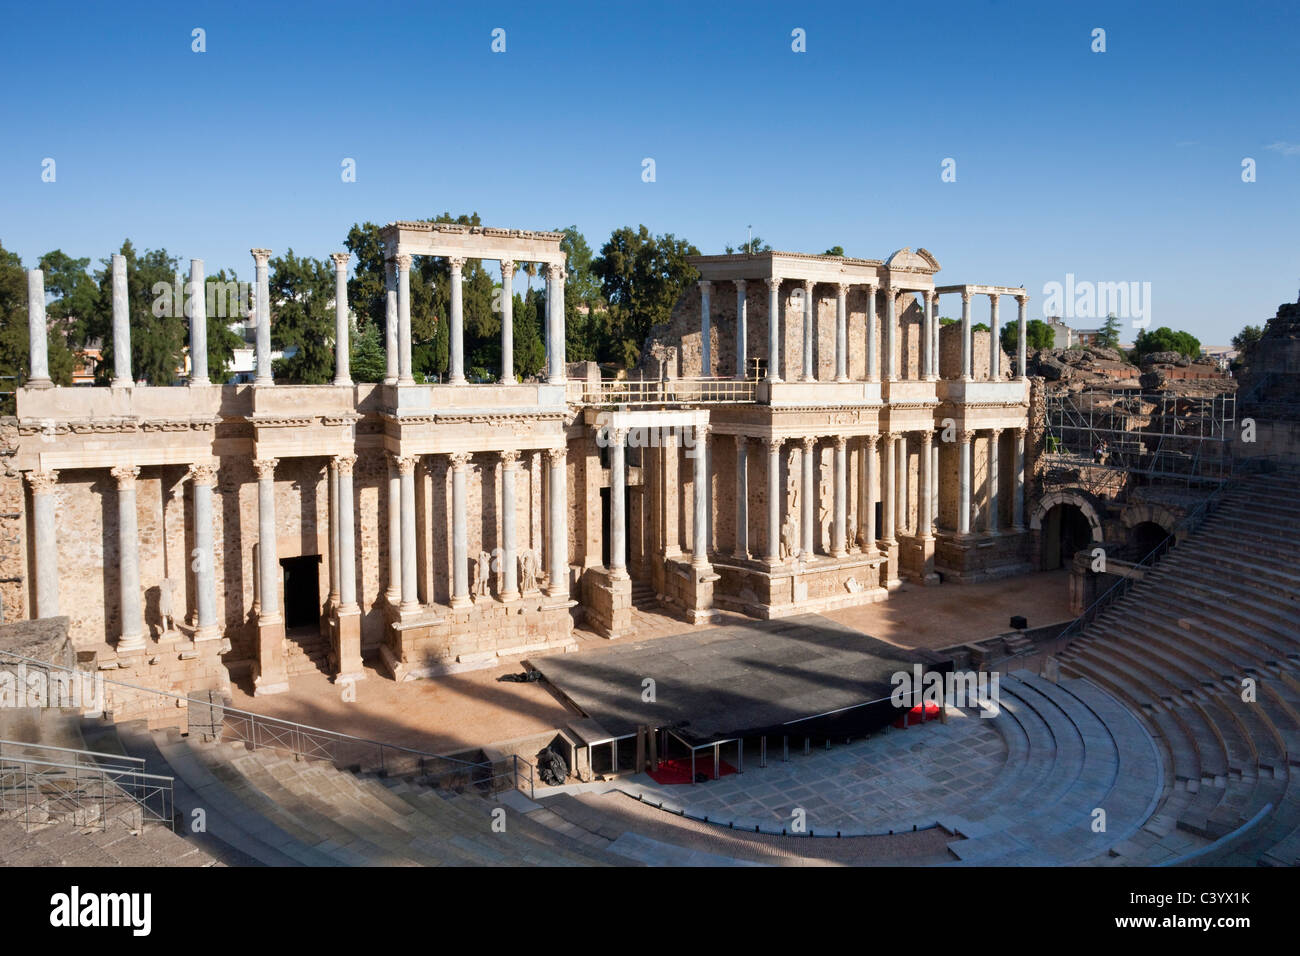 Spain, Europe, Merida, UNESCO, world cultural heritage, theater, Roman, amphitheater, stage - Stock Image